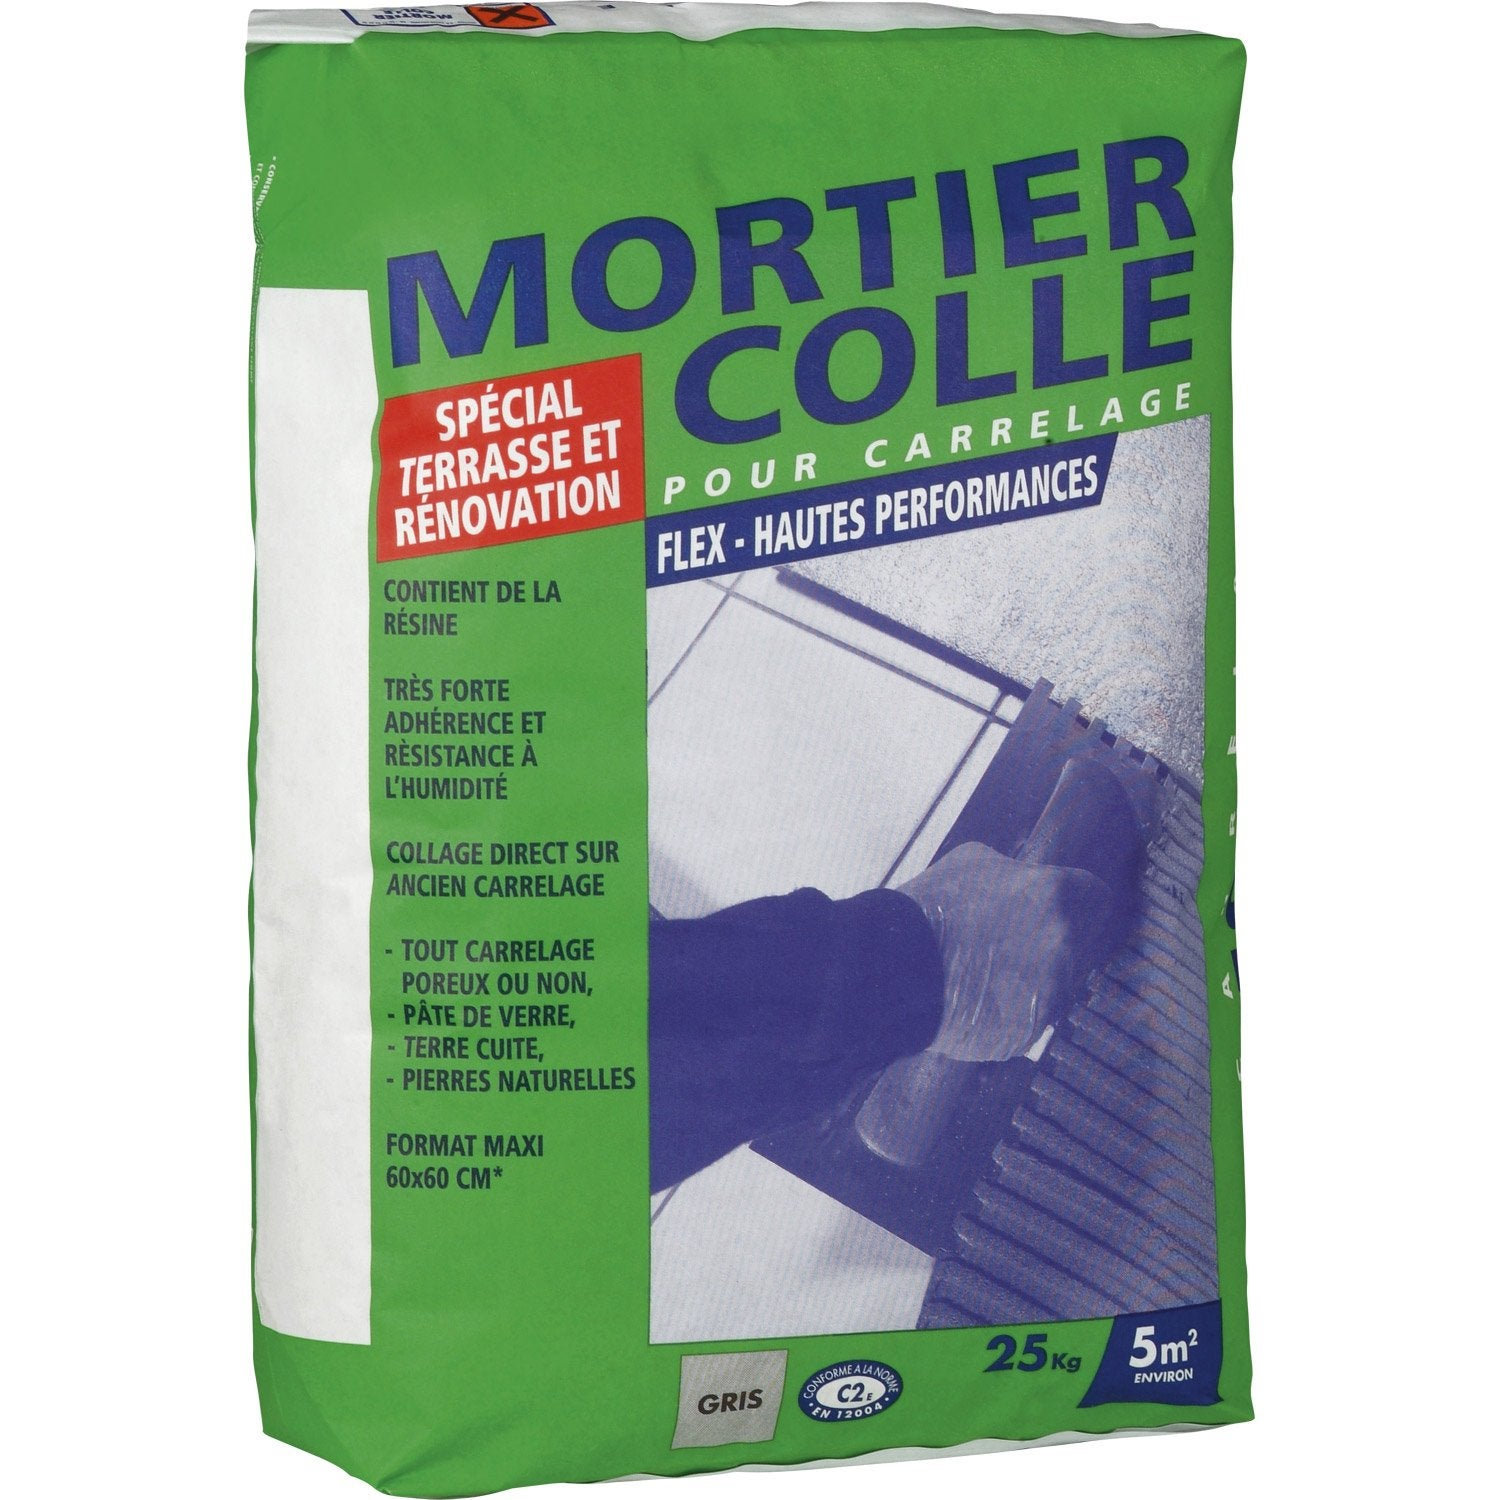 Mortier colle flex gris 25 kg leroy merlin for Colle carrelage exterieur leroy merlin